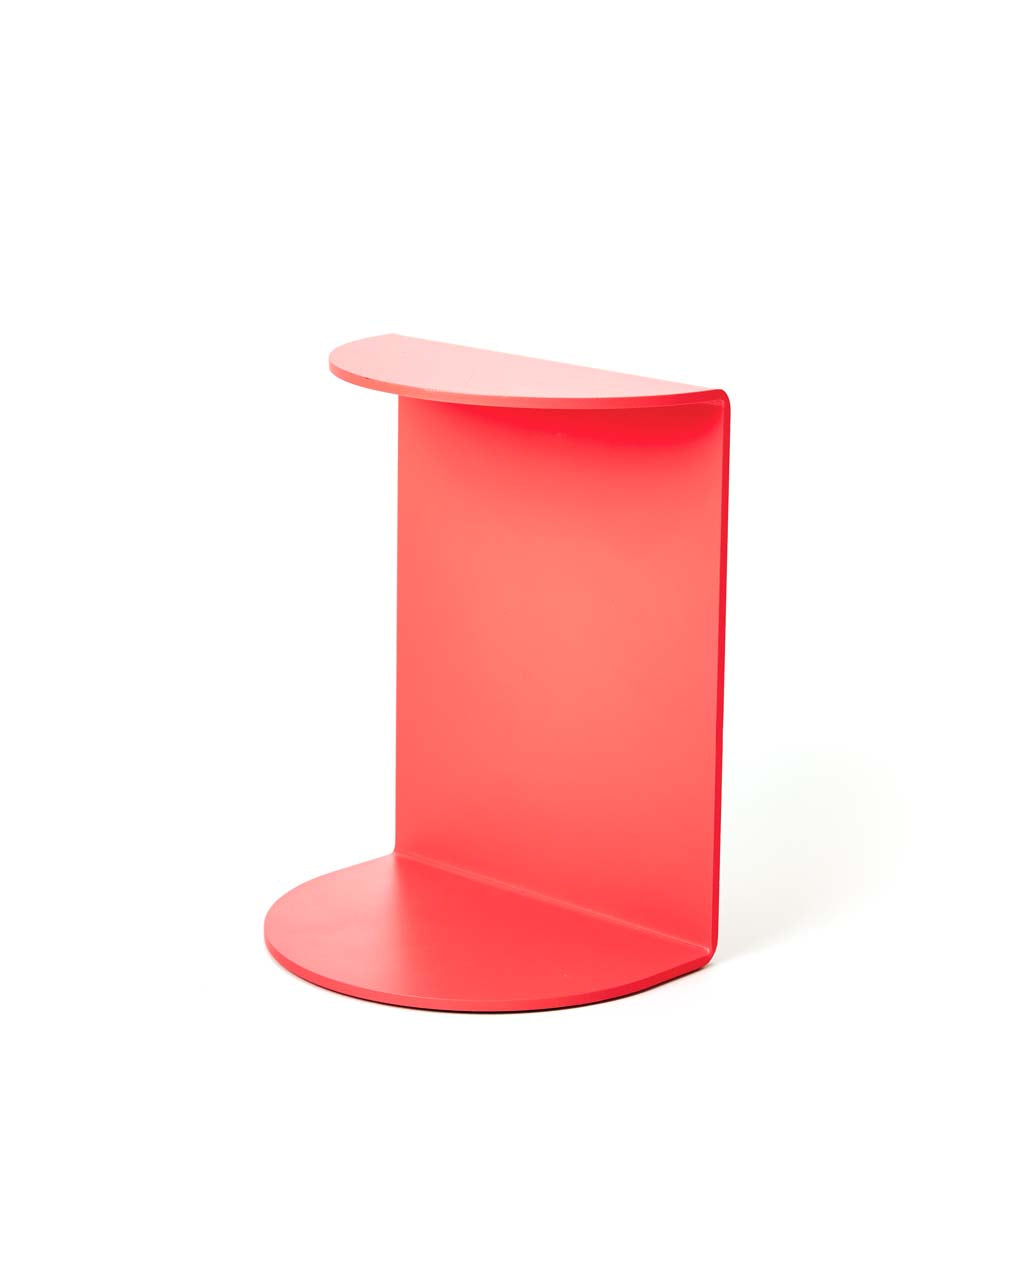 This Reference Bookend by Areaware comes in bright red.